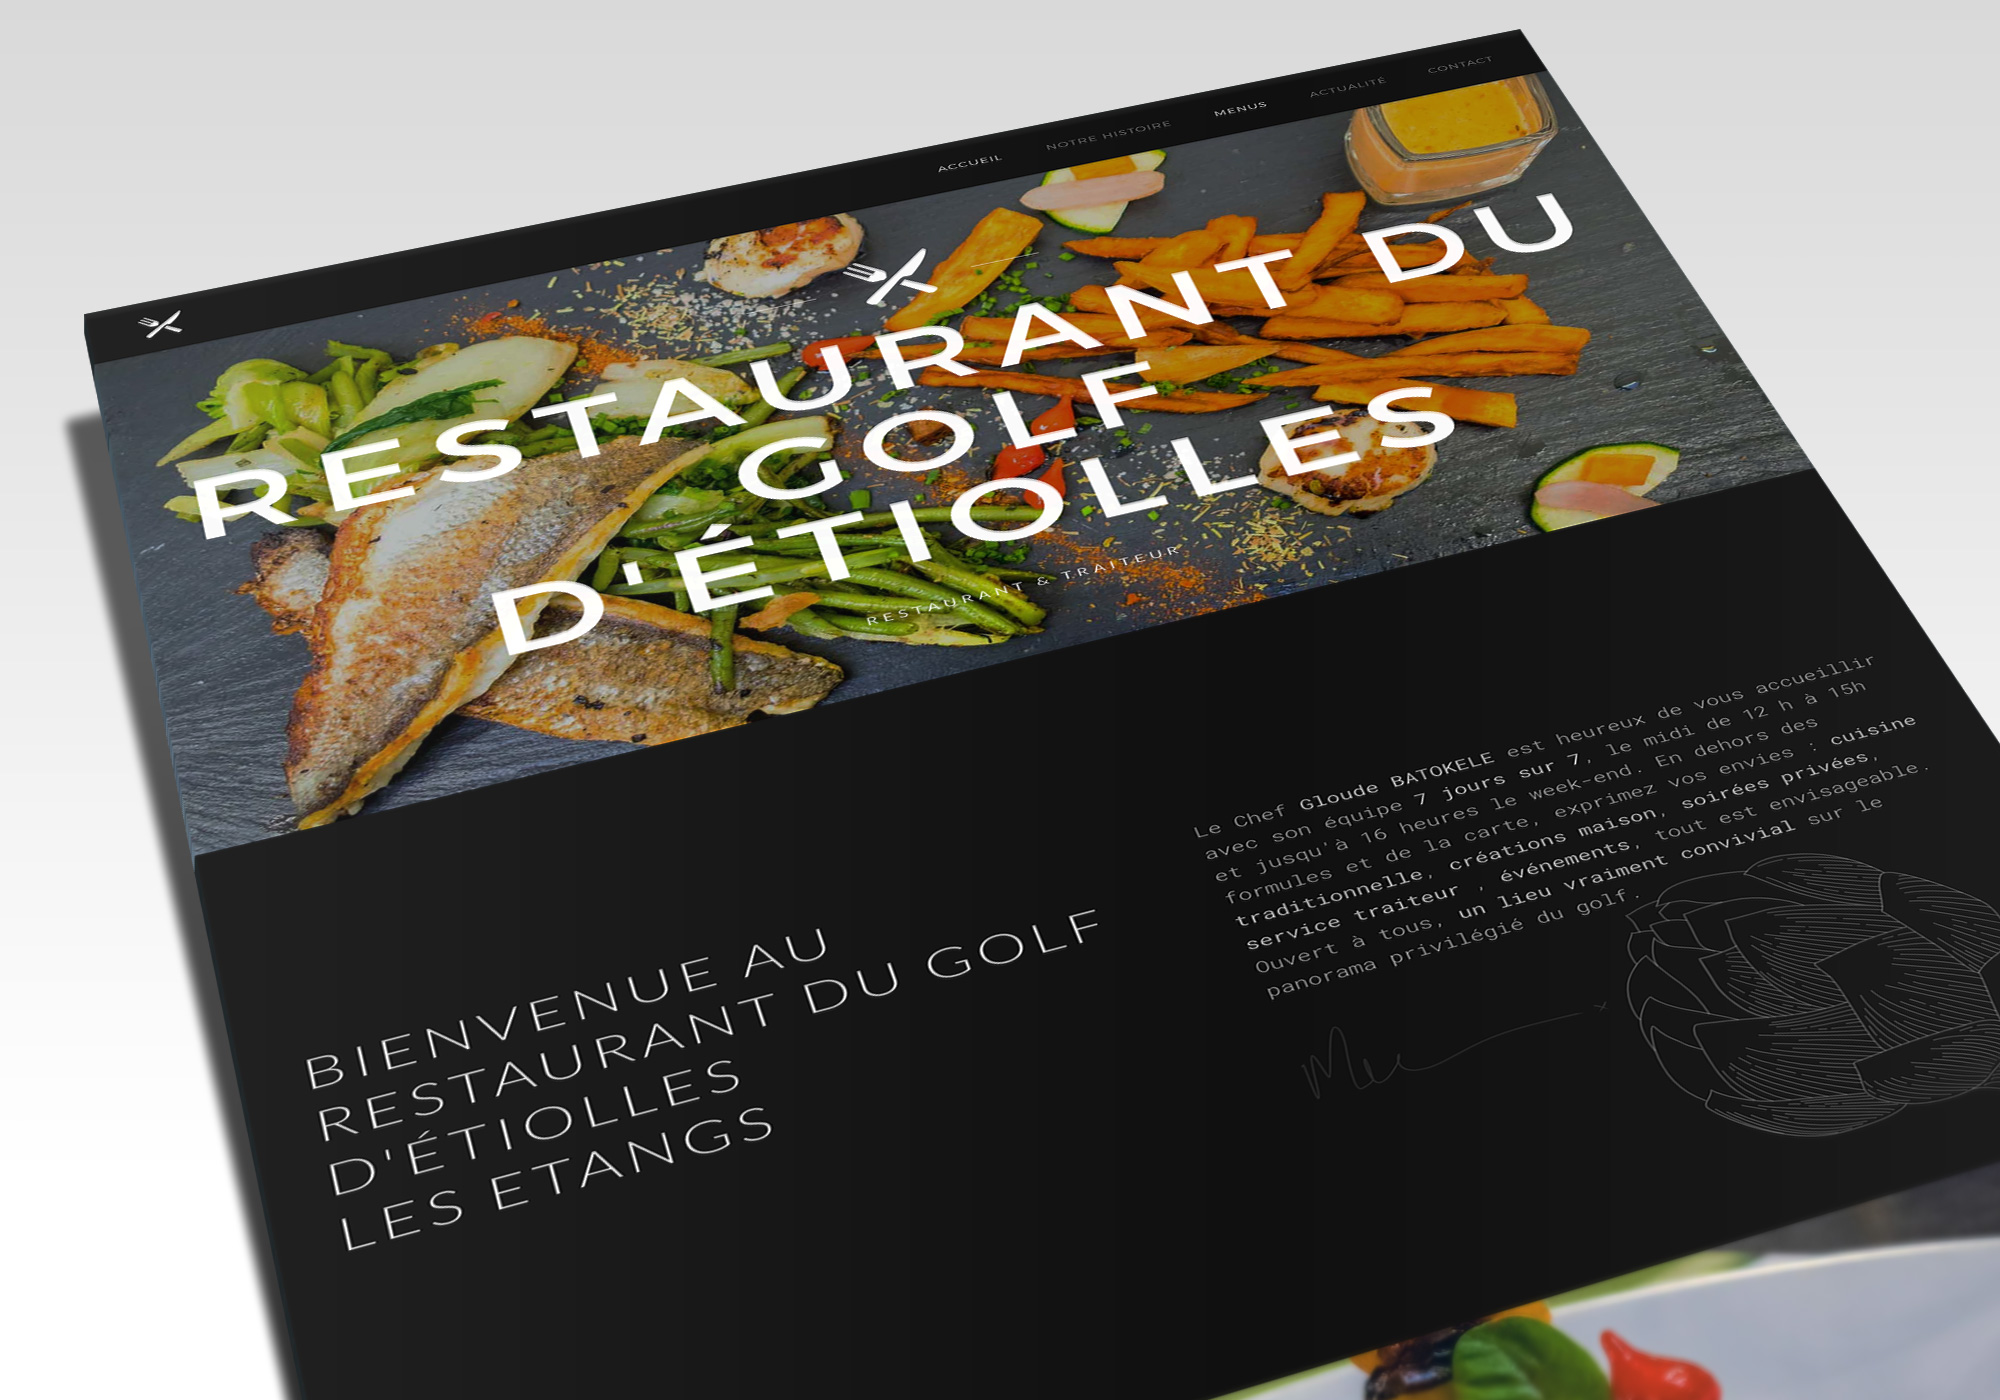 Restaurant Golf Etiolles